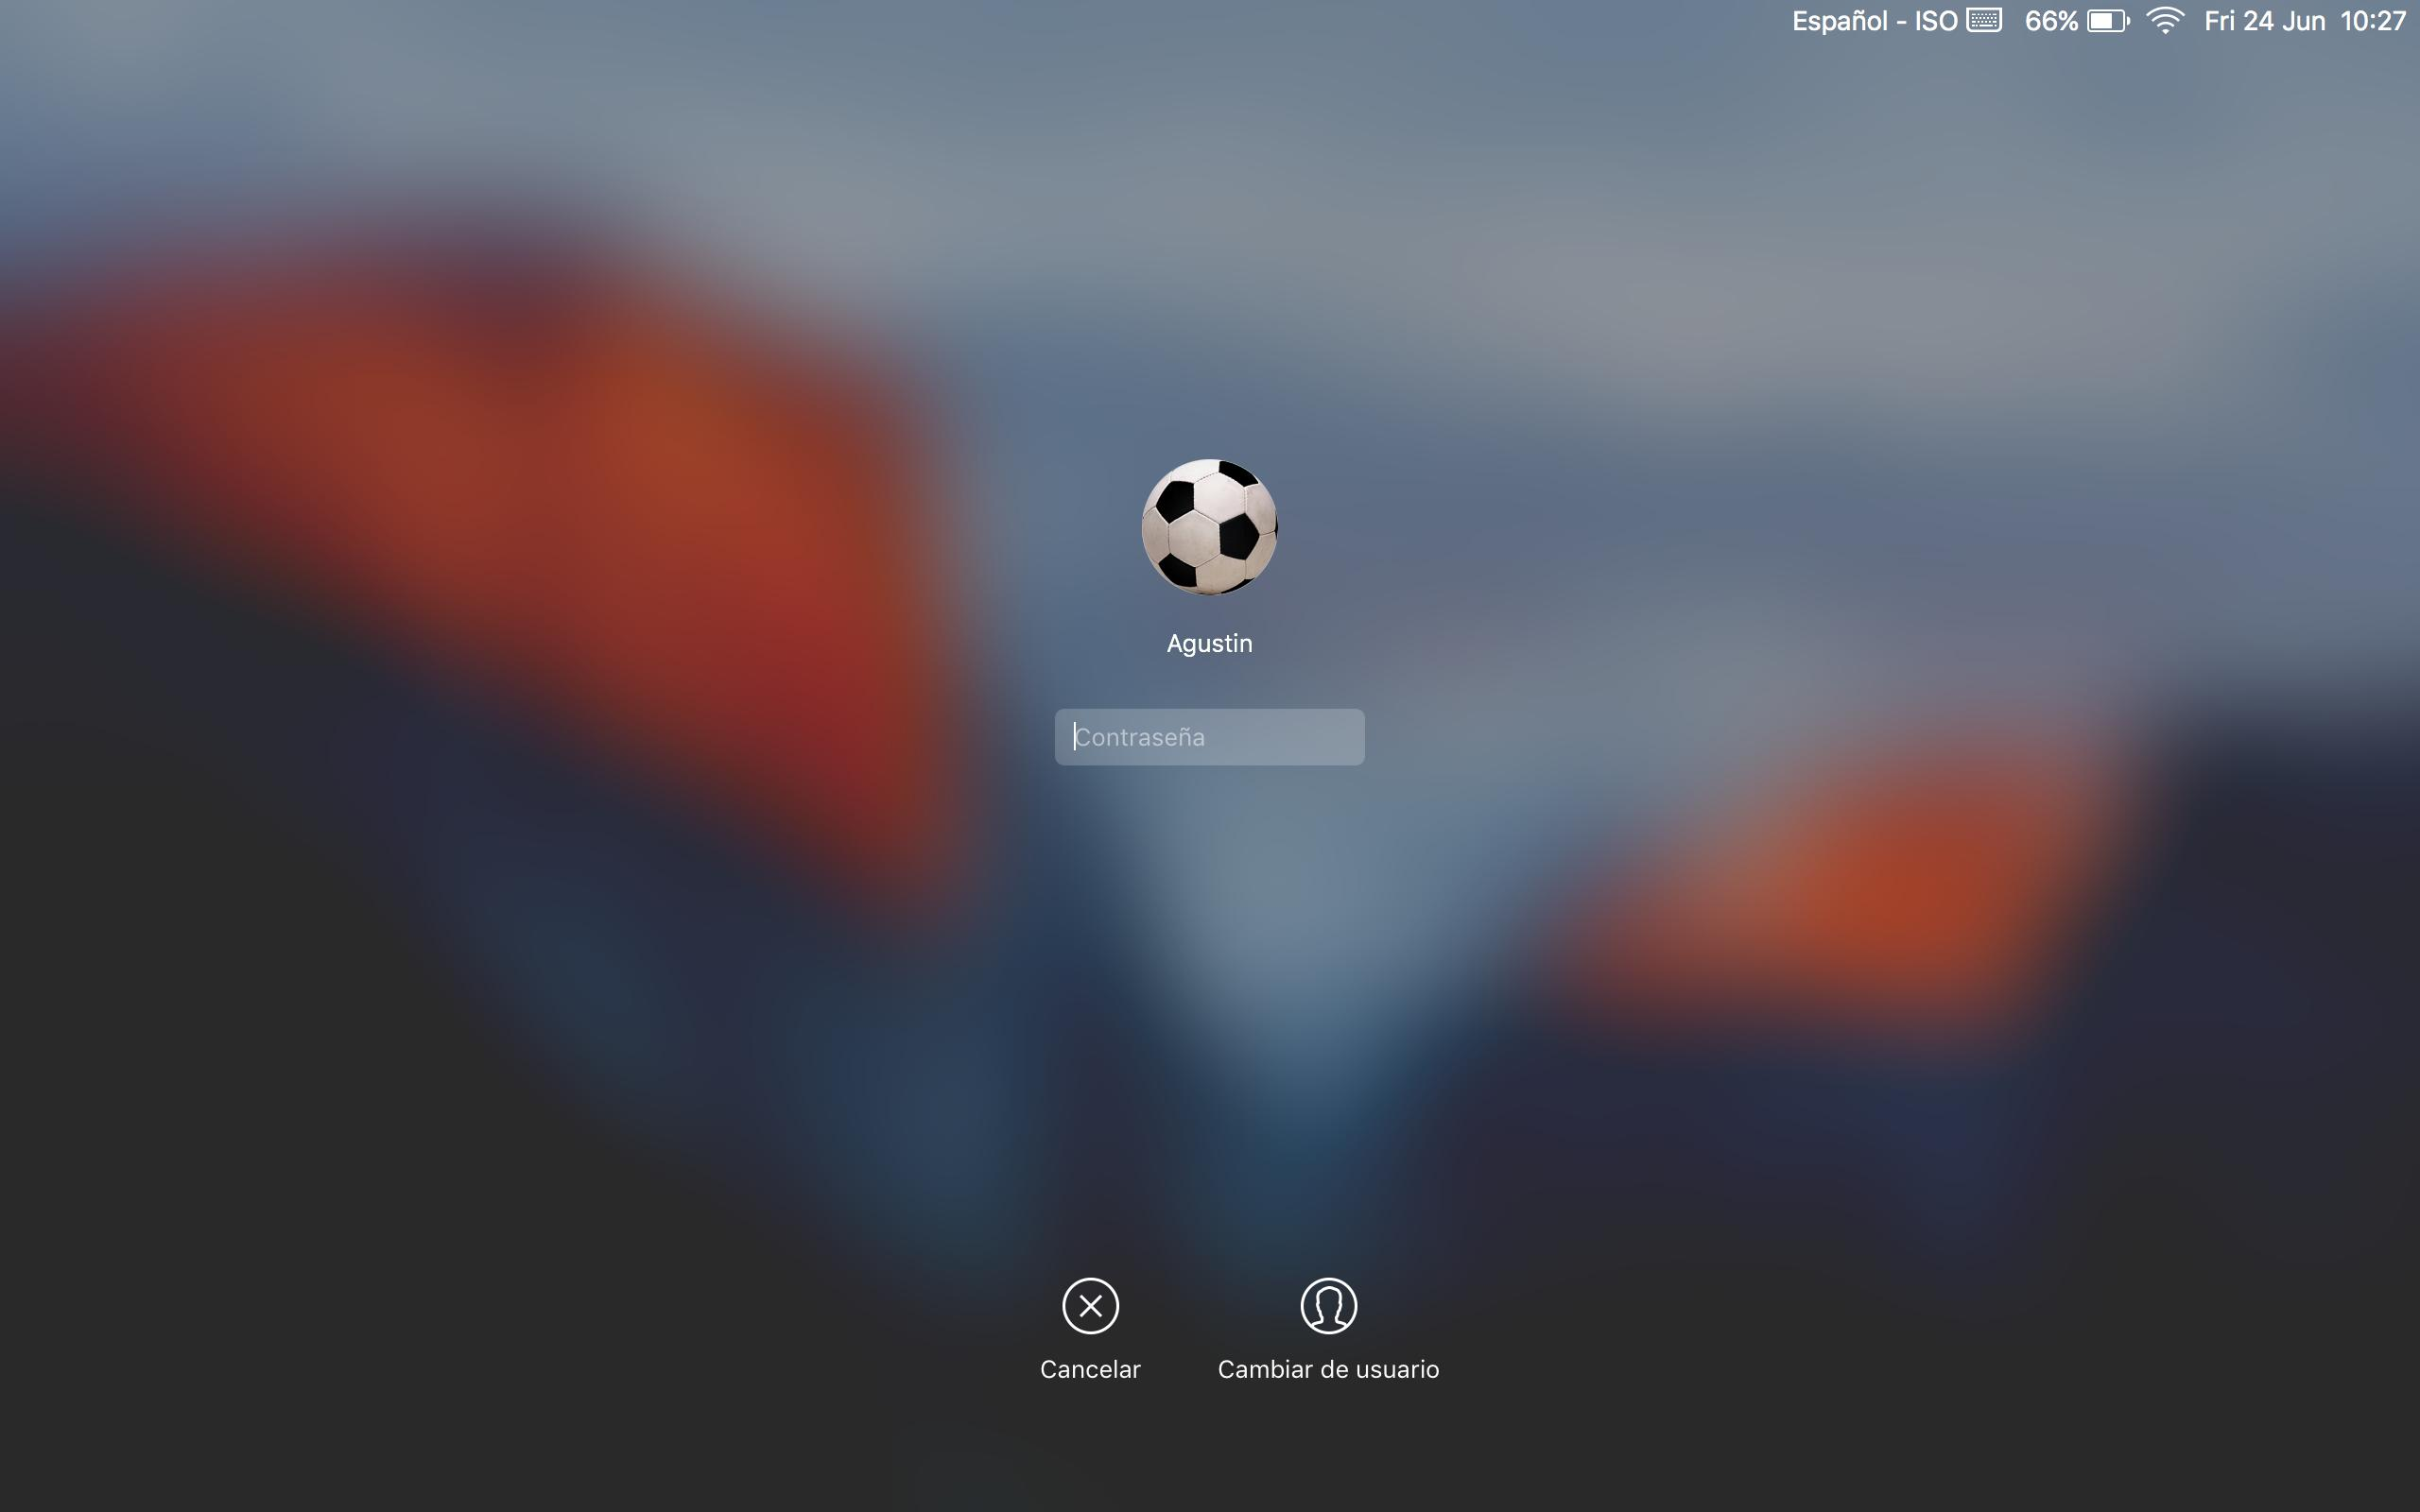 macos - How can I change sleep mode's wallpaper? - Ask Different